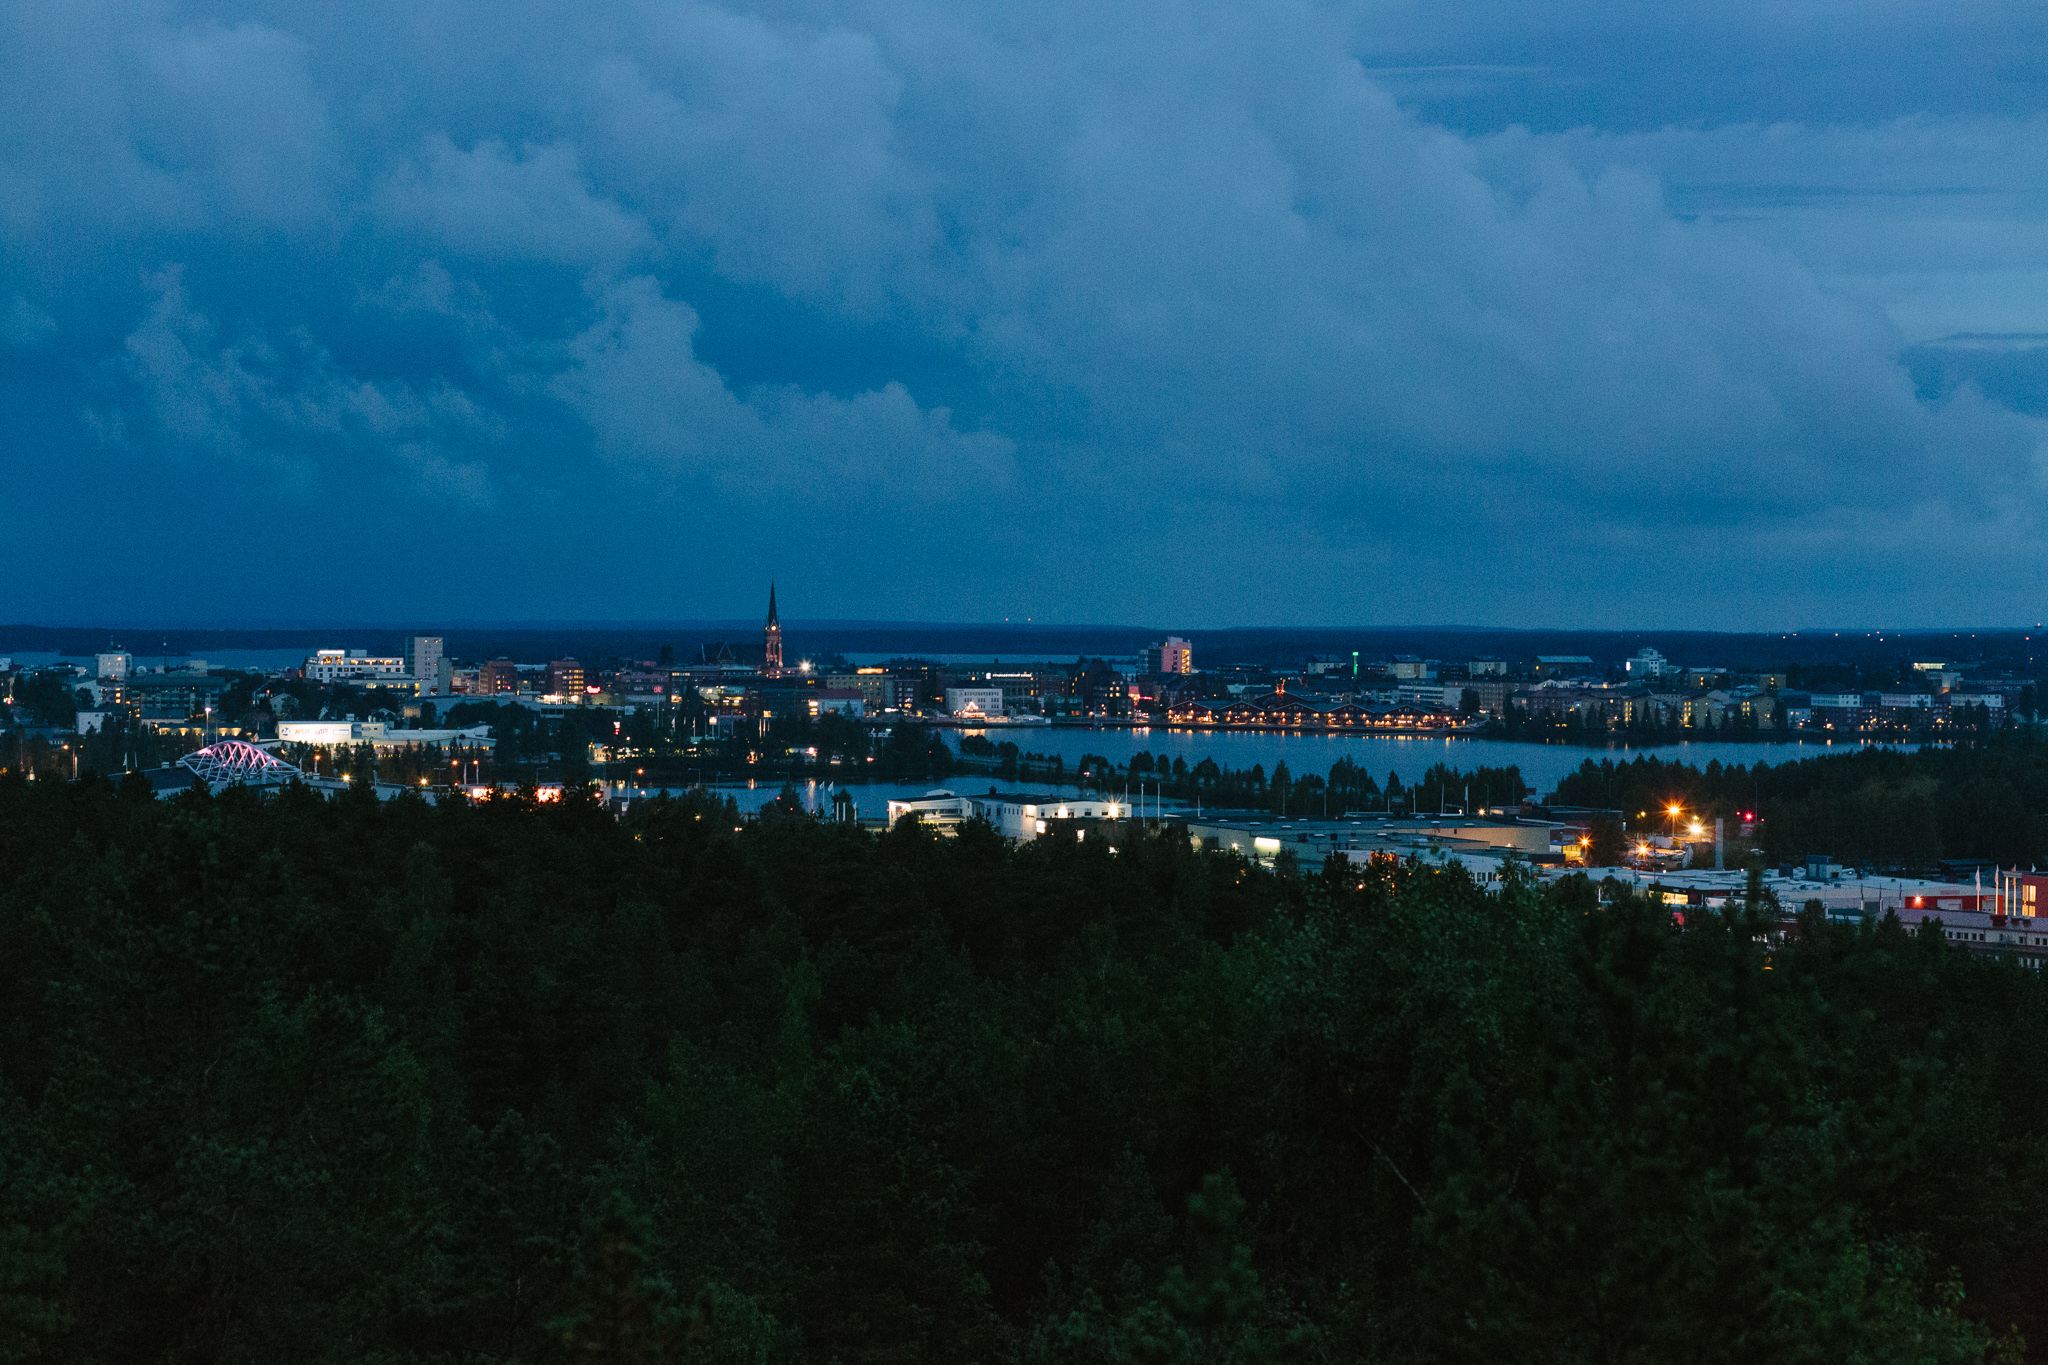 Luleå at night - view from the water tower hill.